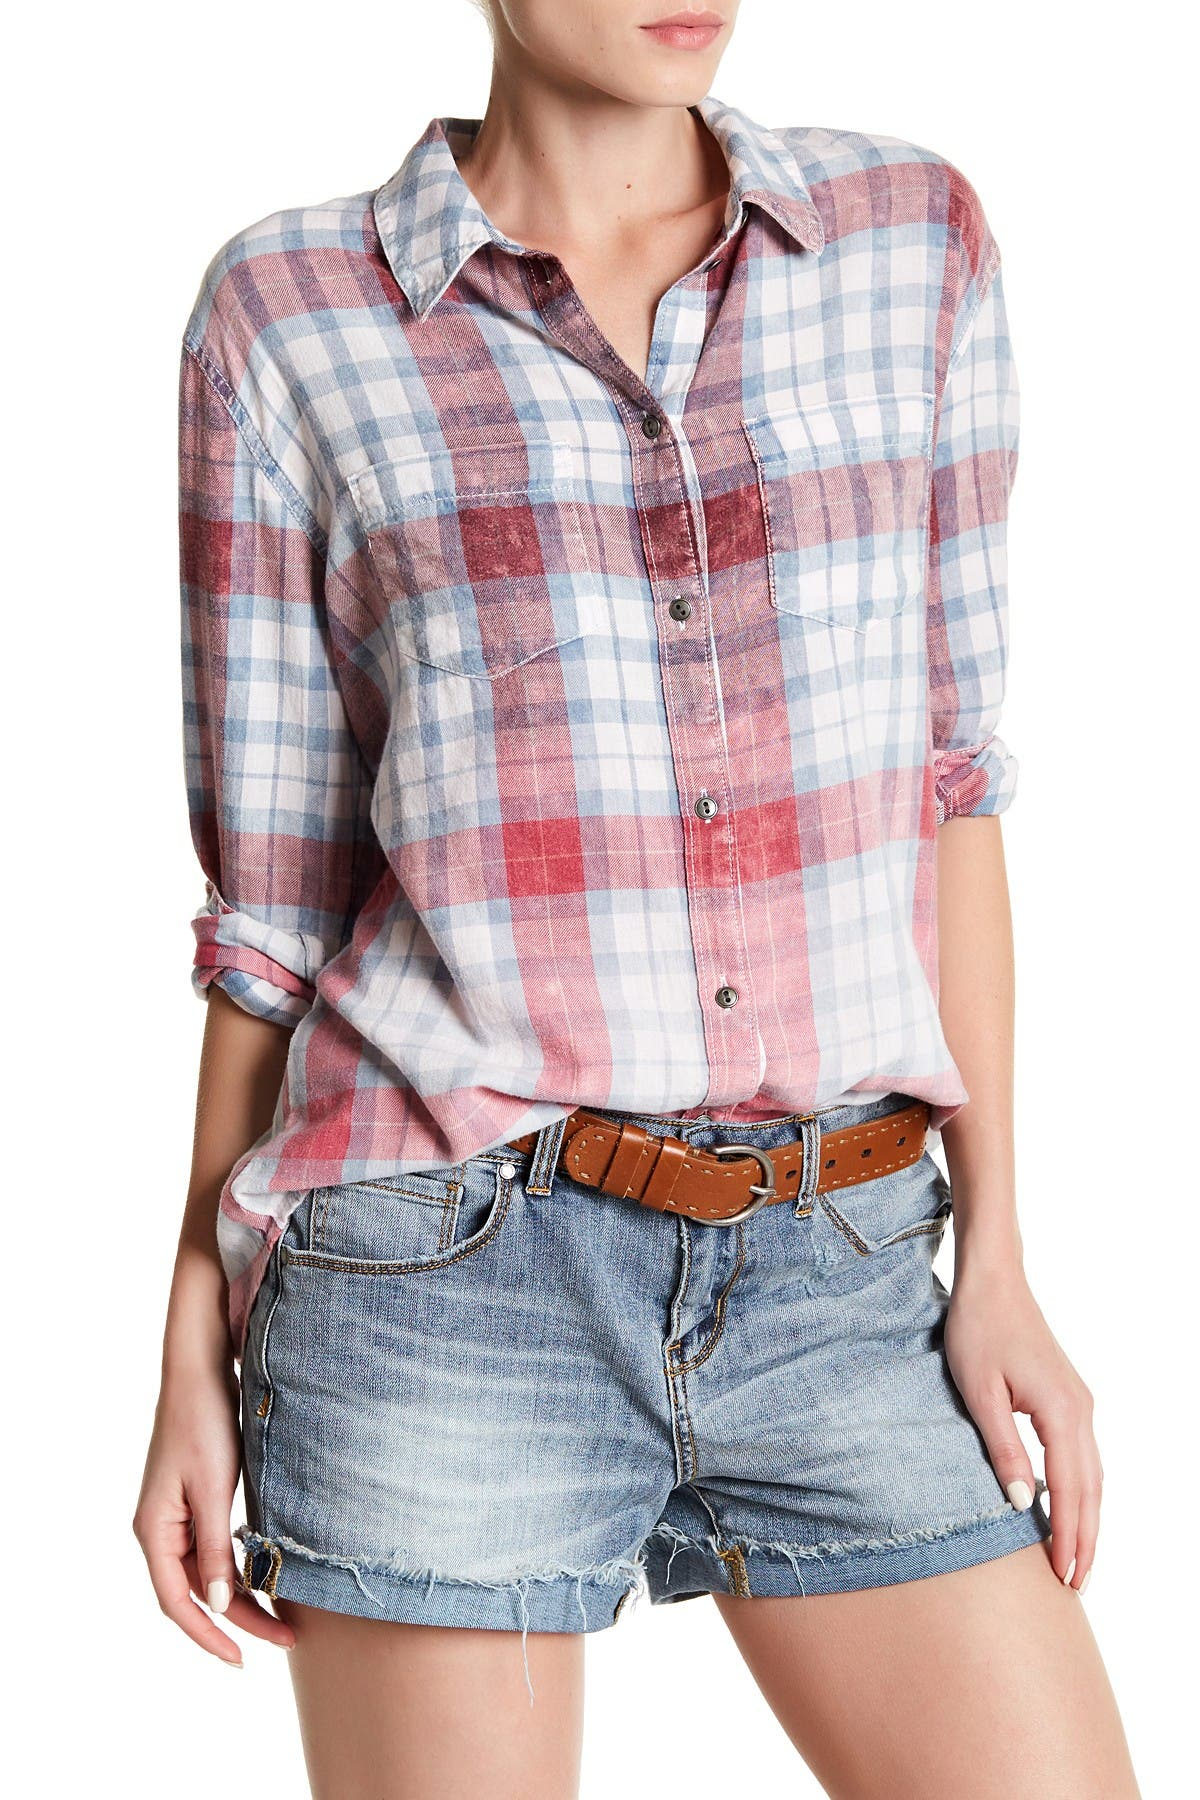 Image of Melrose and Market Layered Back Boyfriend Shirt